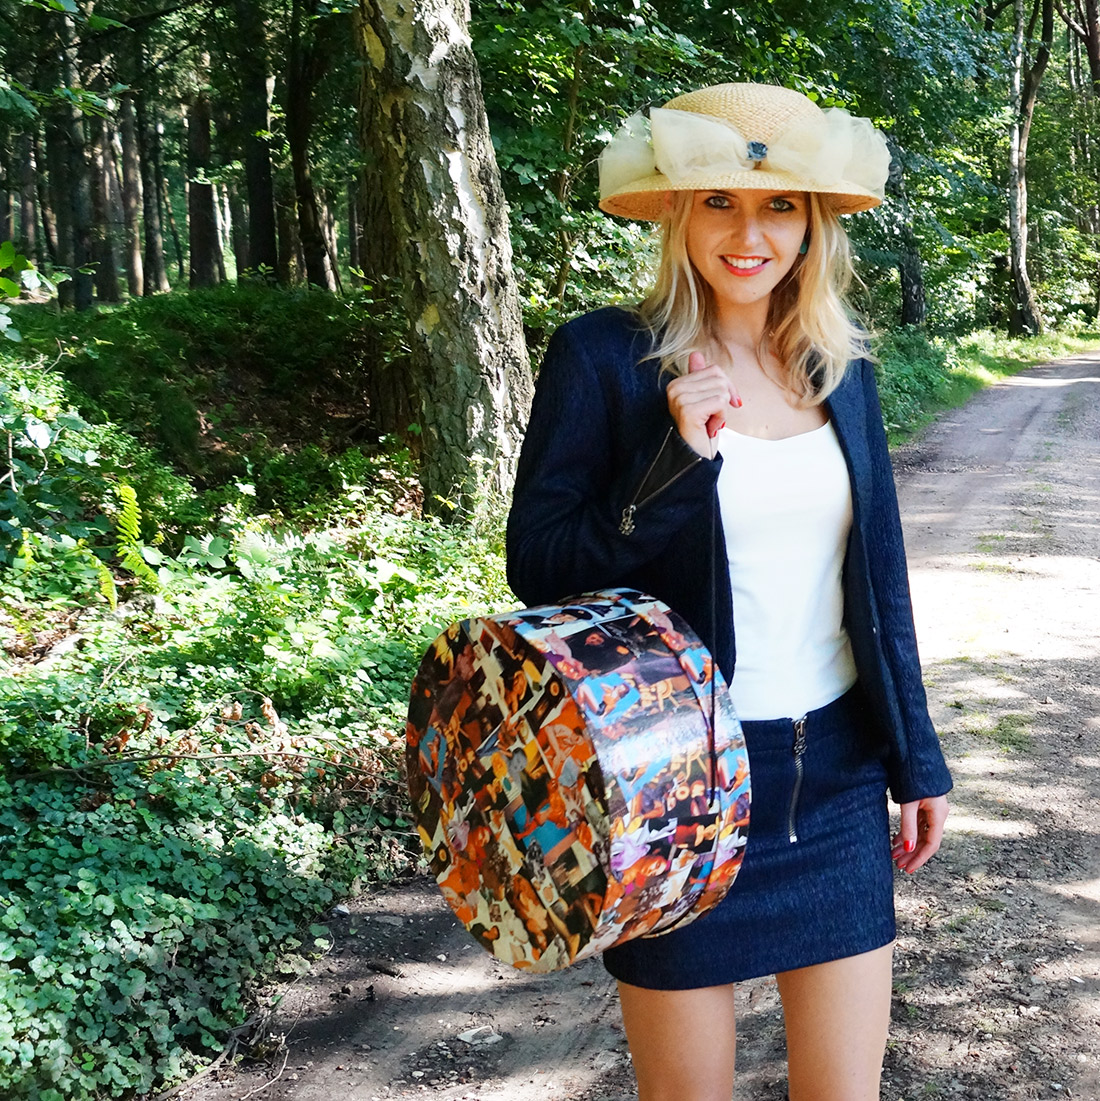 Bag-at-You---Fashion-blog---Hat-box-bag---Summer-wedding-outfit